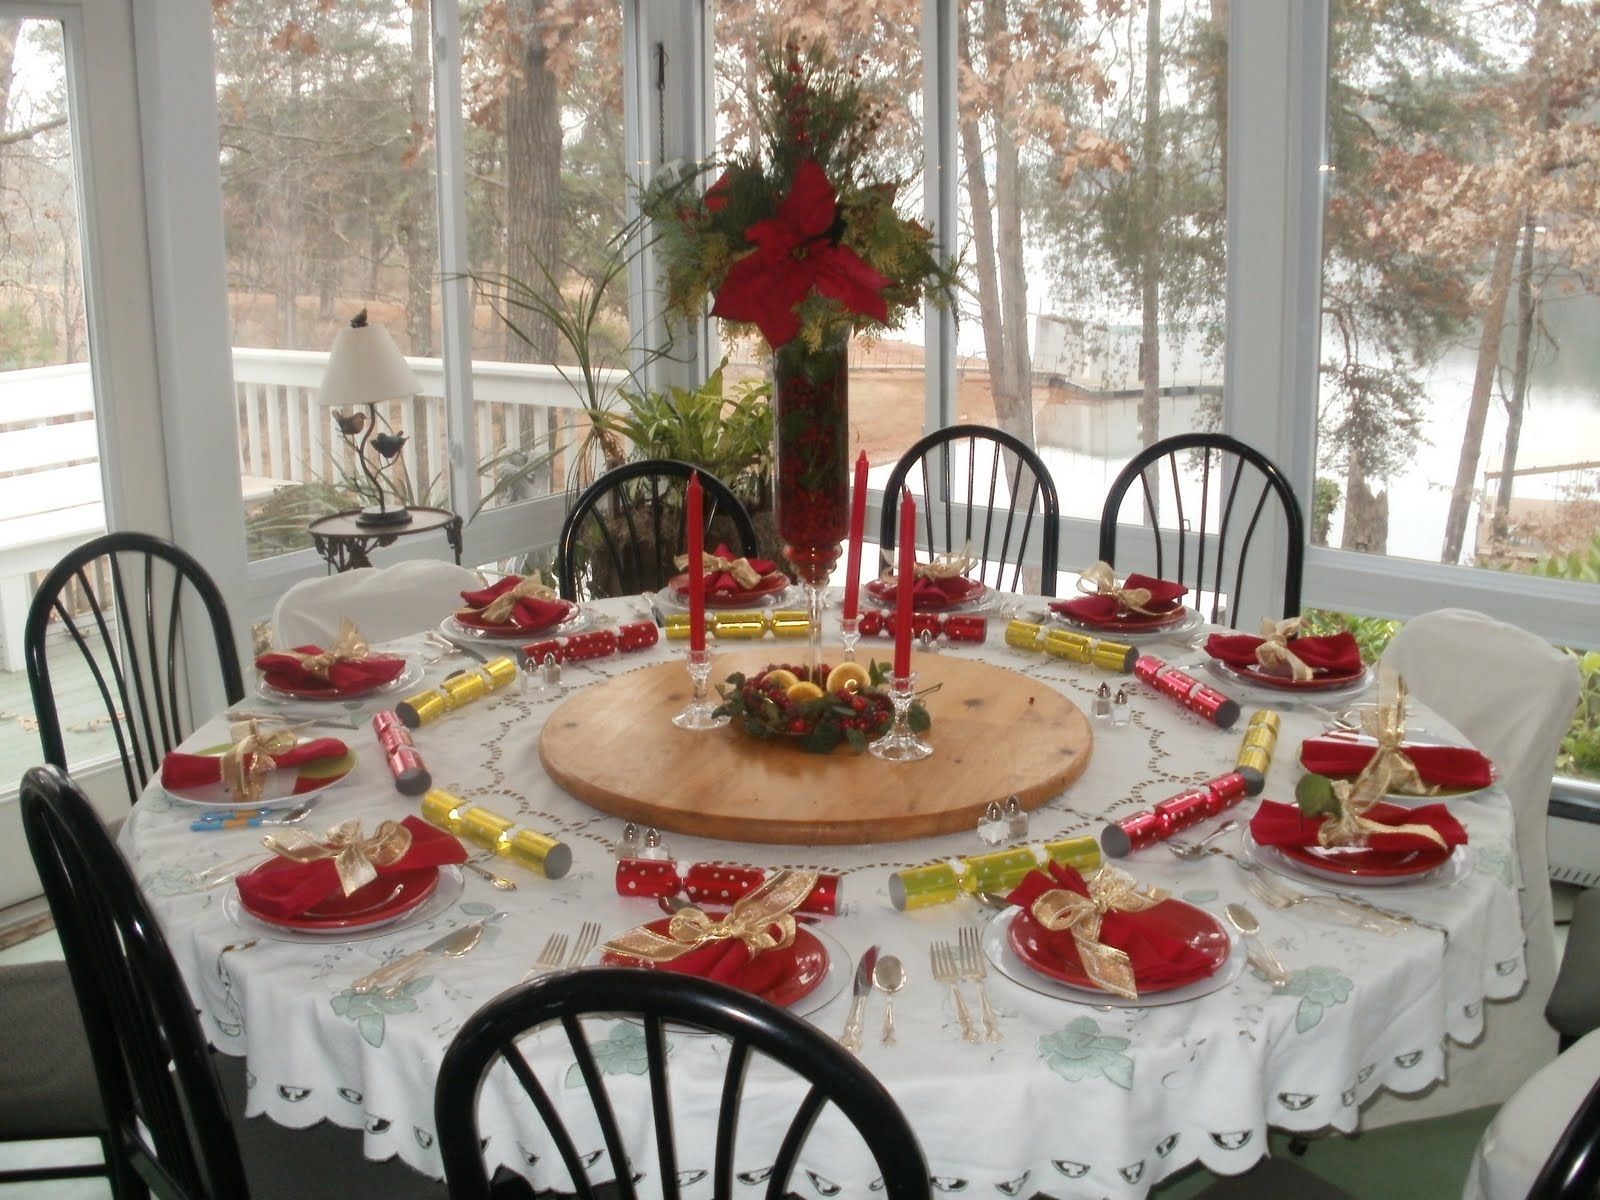 Christmas Is All About Celebrations The Celebrations Include Food D Christmas Decorations Dinner Table Christmas Dinner Table Christmas Dinner Table Settings